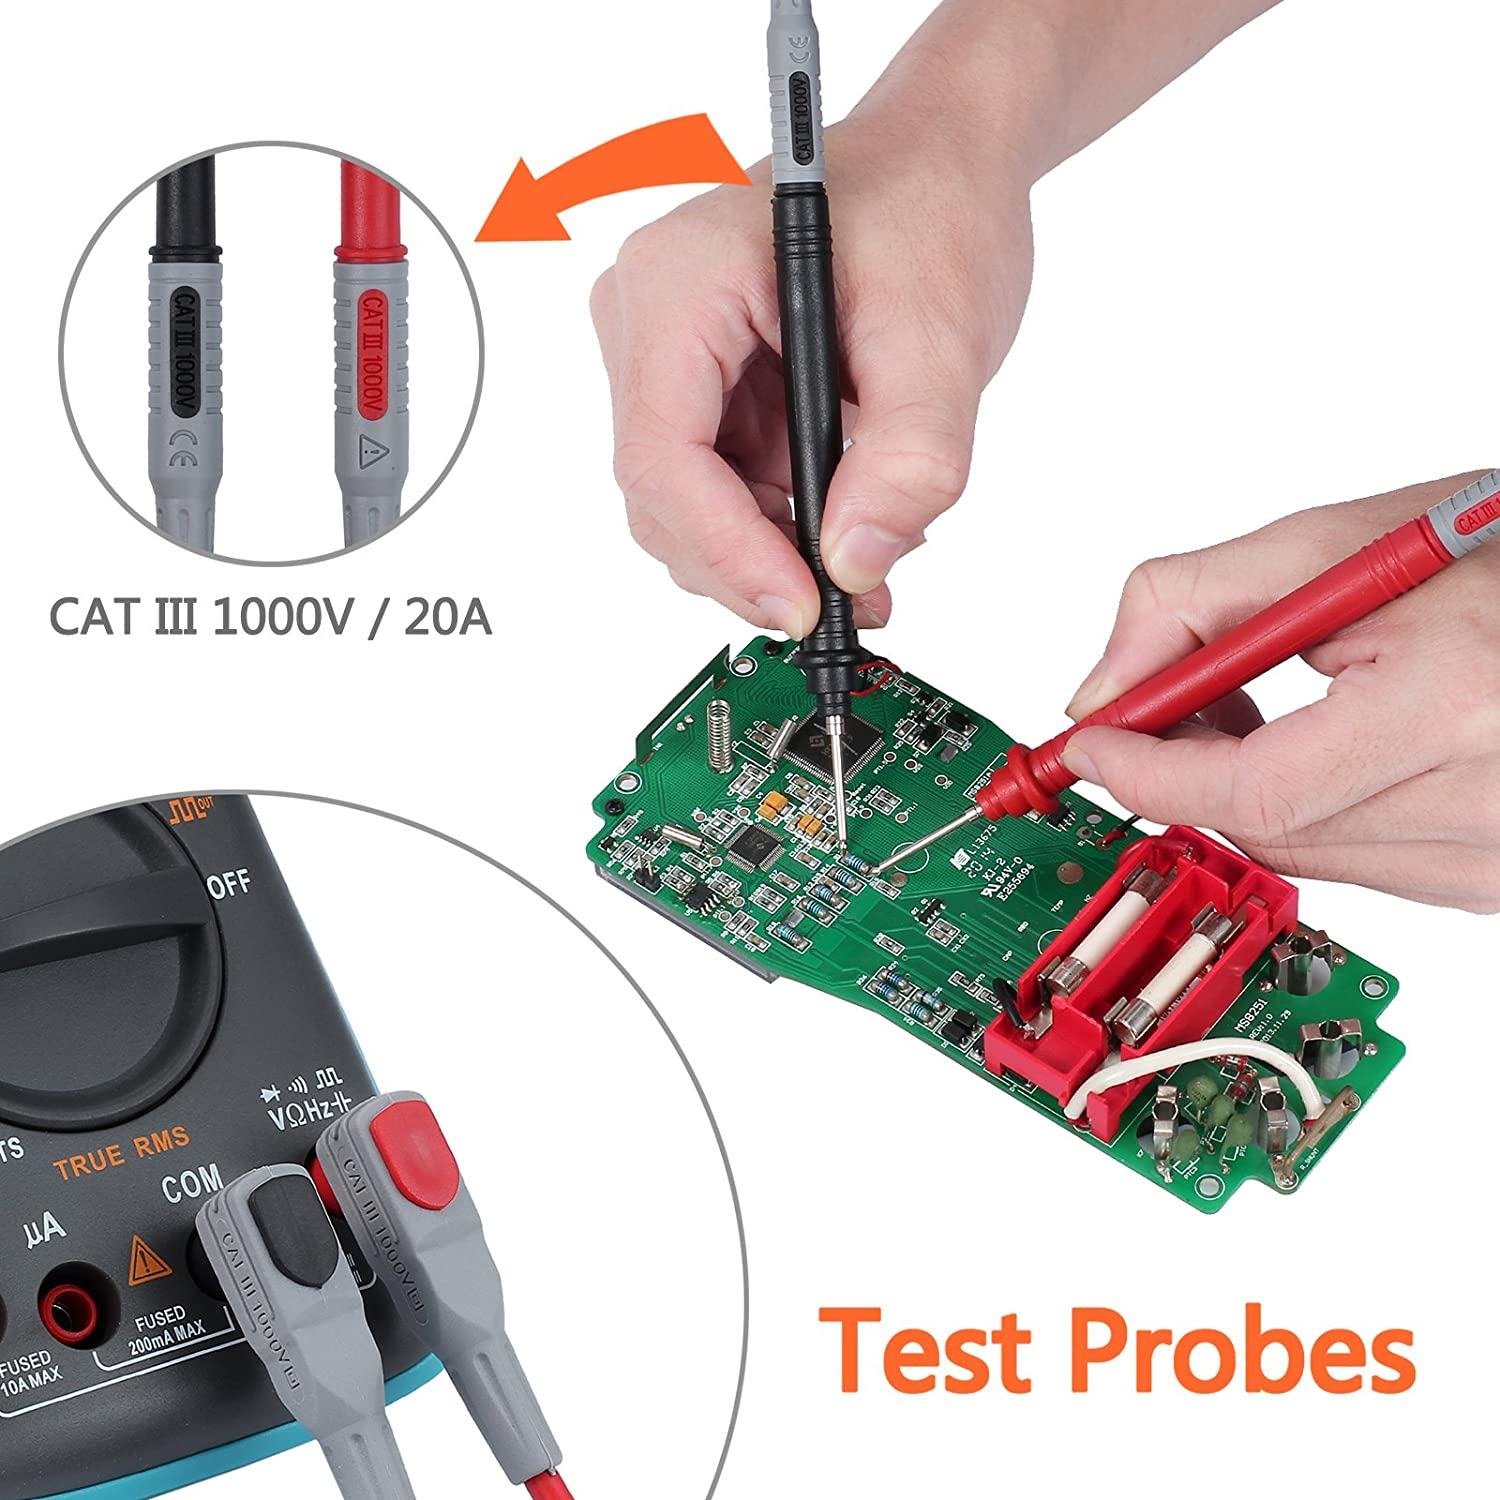 Multimeter Test Leads Kit Multimeter Leads with 8 PCS Probe Pins Alligator Clips And Banana Plug for Multimeter Clamp Meter